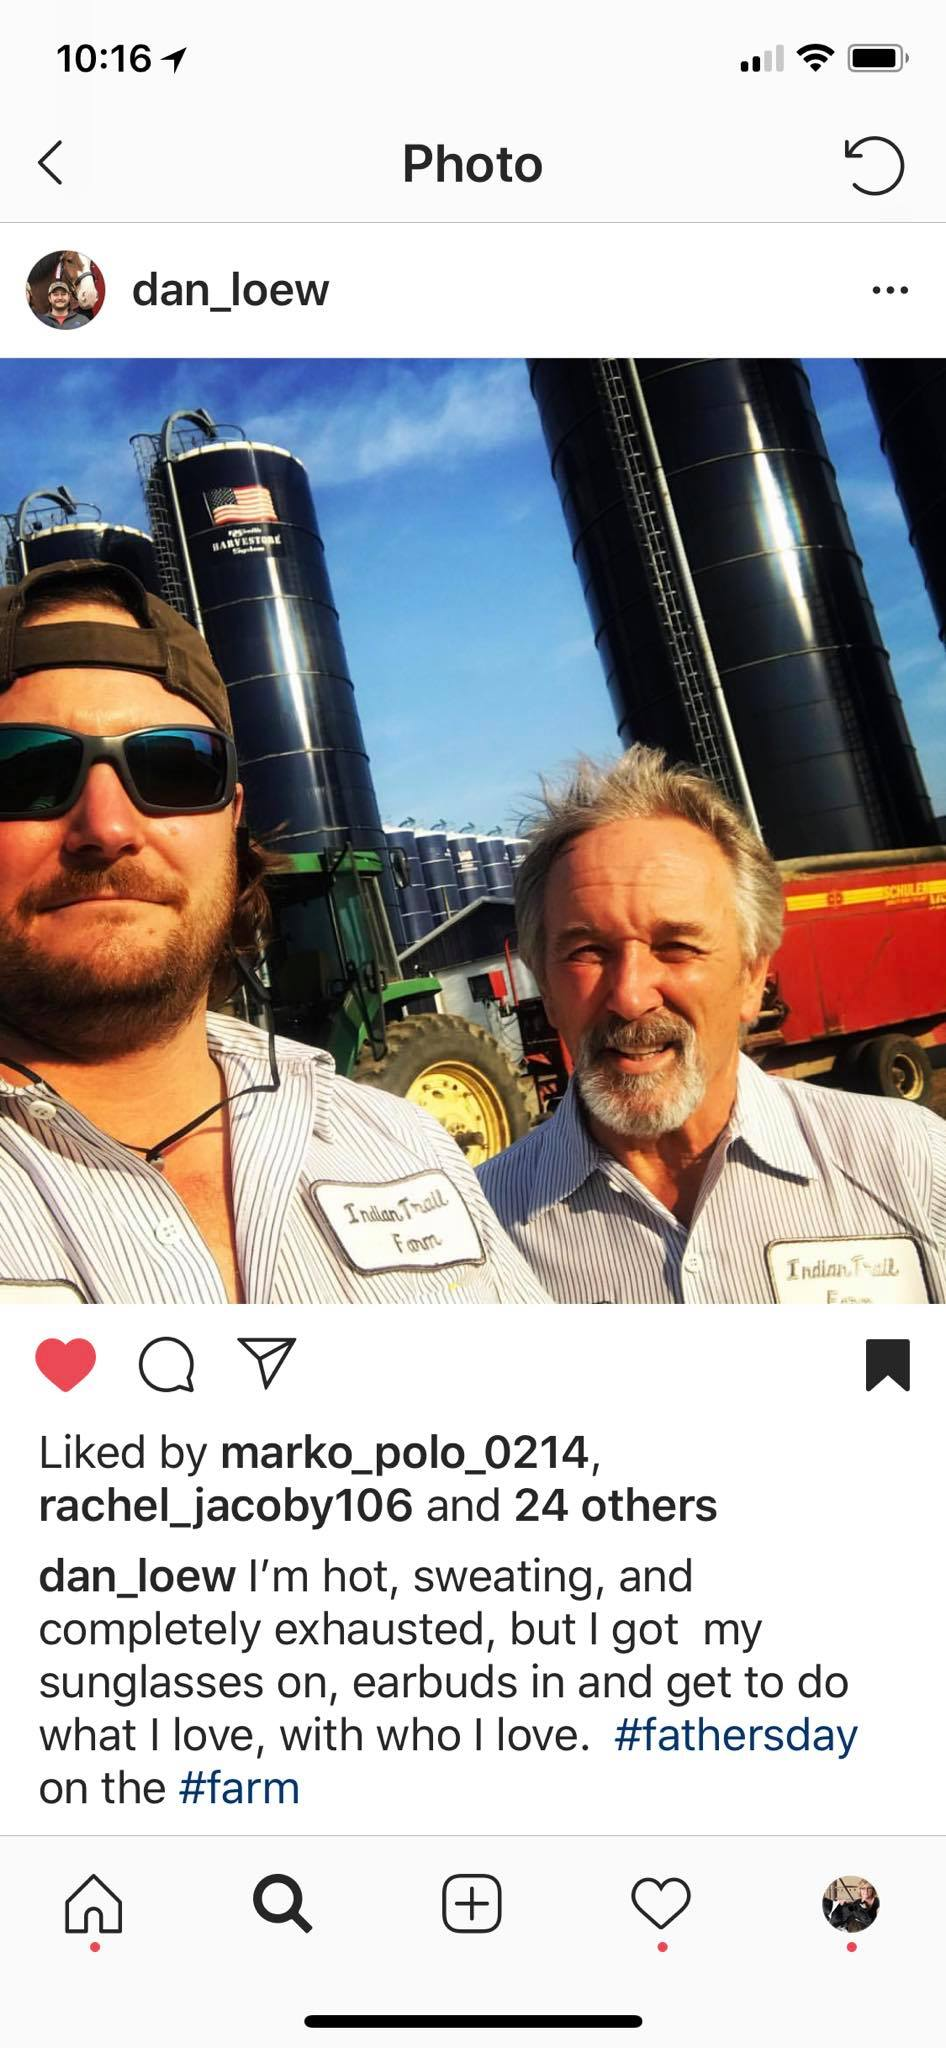 Two of my favorite farmers - it's the people not the things.